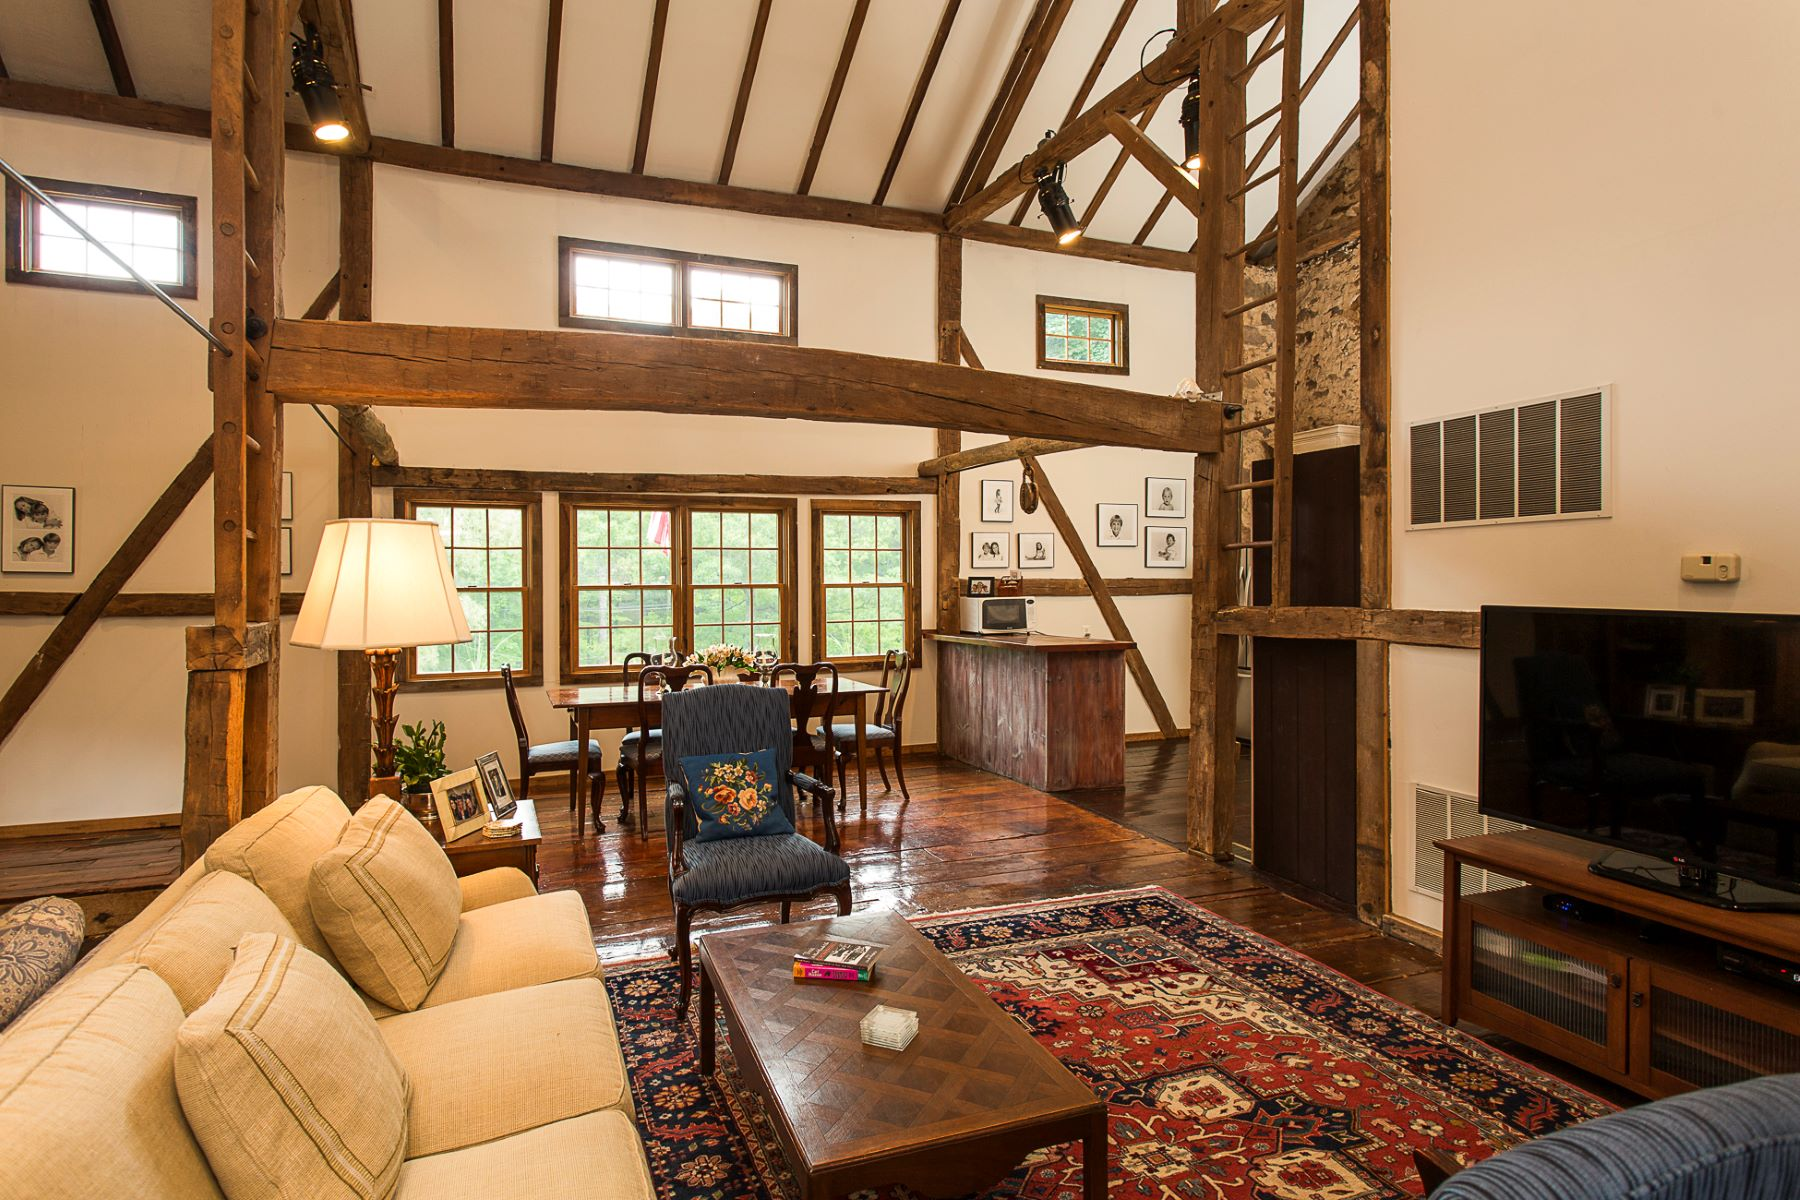 Additional photo for property listing at Beautifully Renovated Stone Barn Apartment 5694 Carversville Road B, Doylestown, Pennsylvania 18902 United States